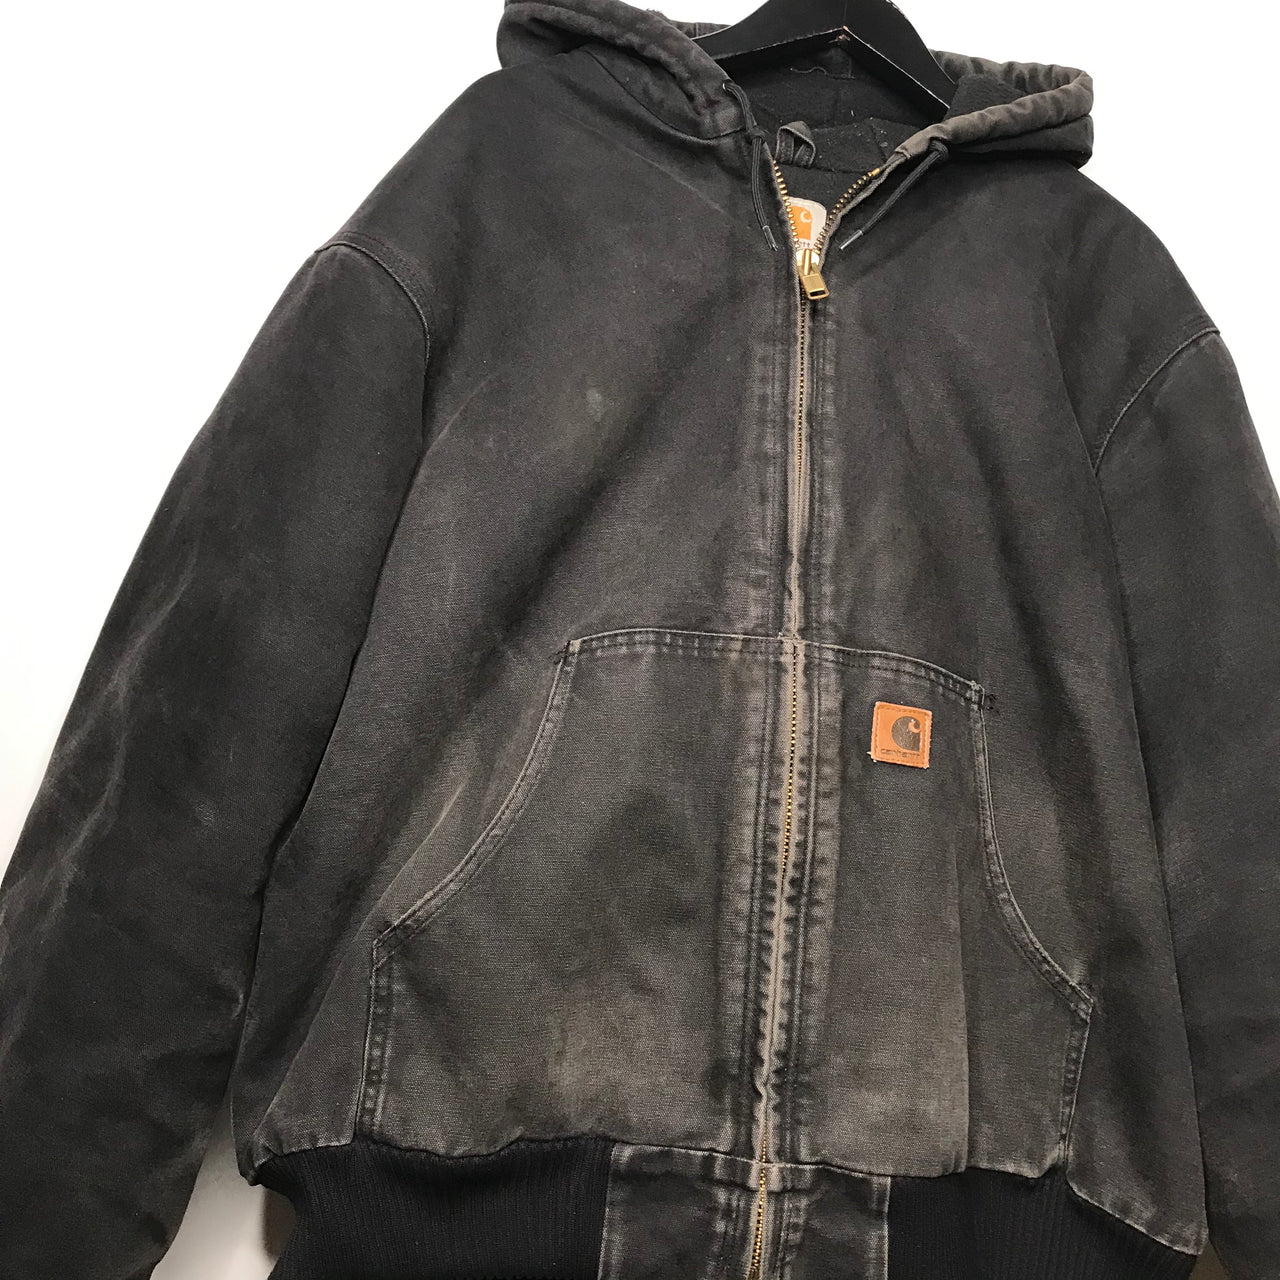 Carhartt Jacket - Late 90s